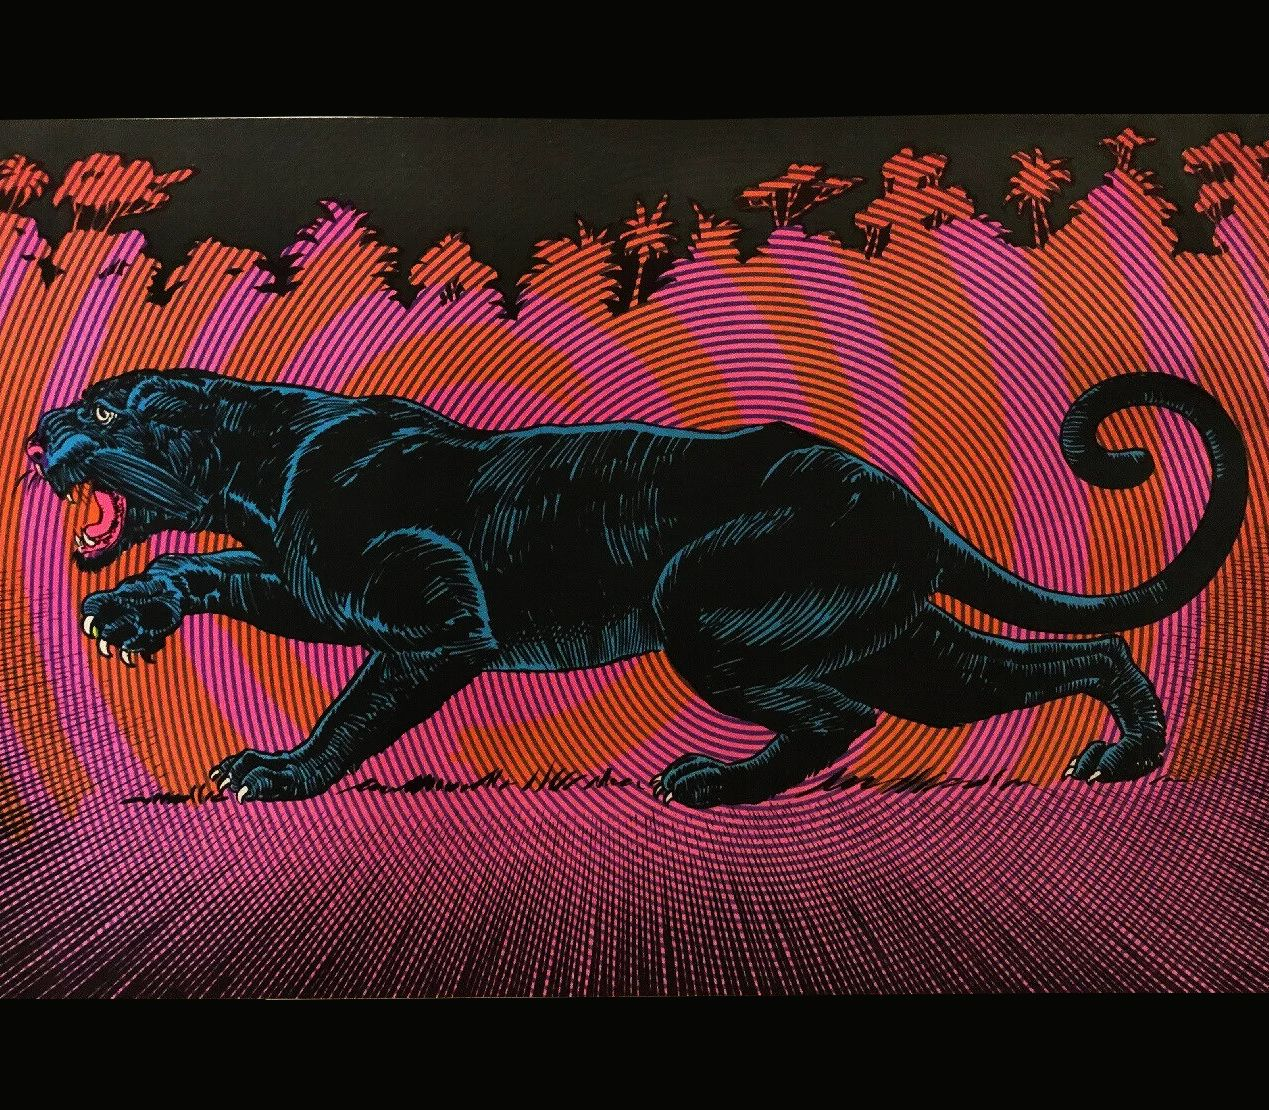 Psychedelic Vintage 1960s Blacklight Poster Black Panther In 2020 Black Panther Tattoo Black Panther Good Luck Today